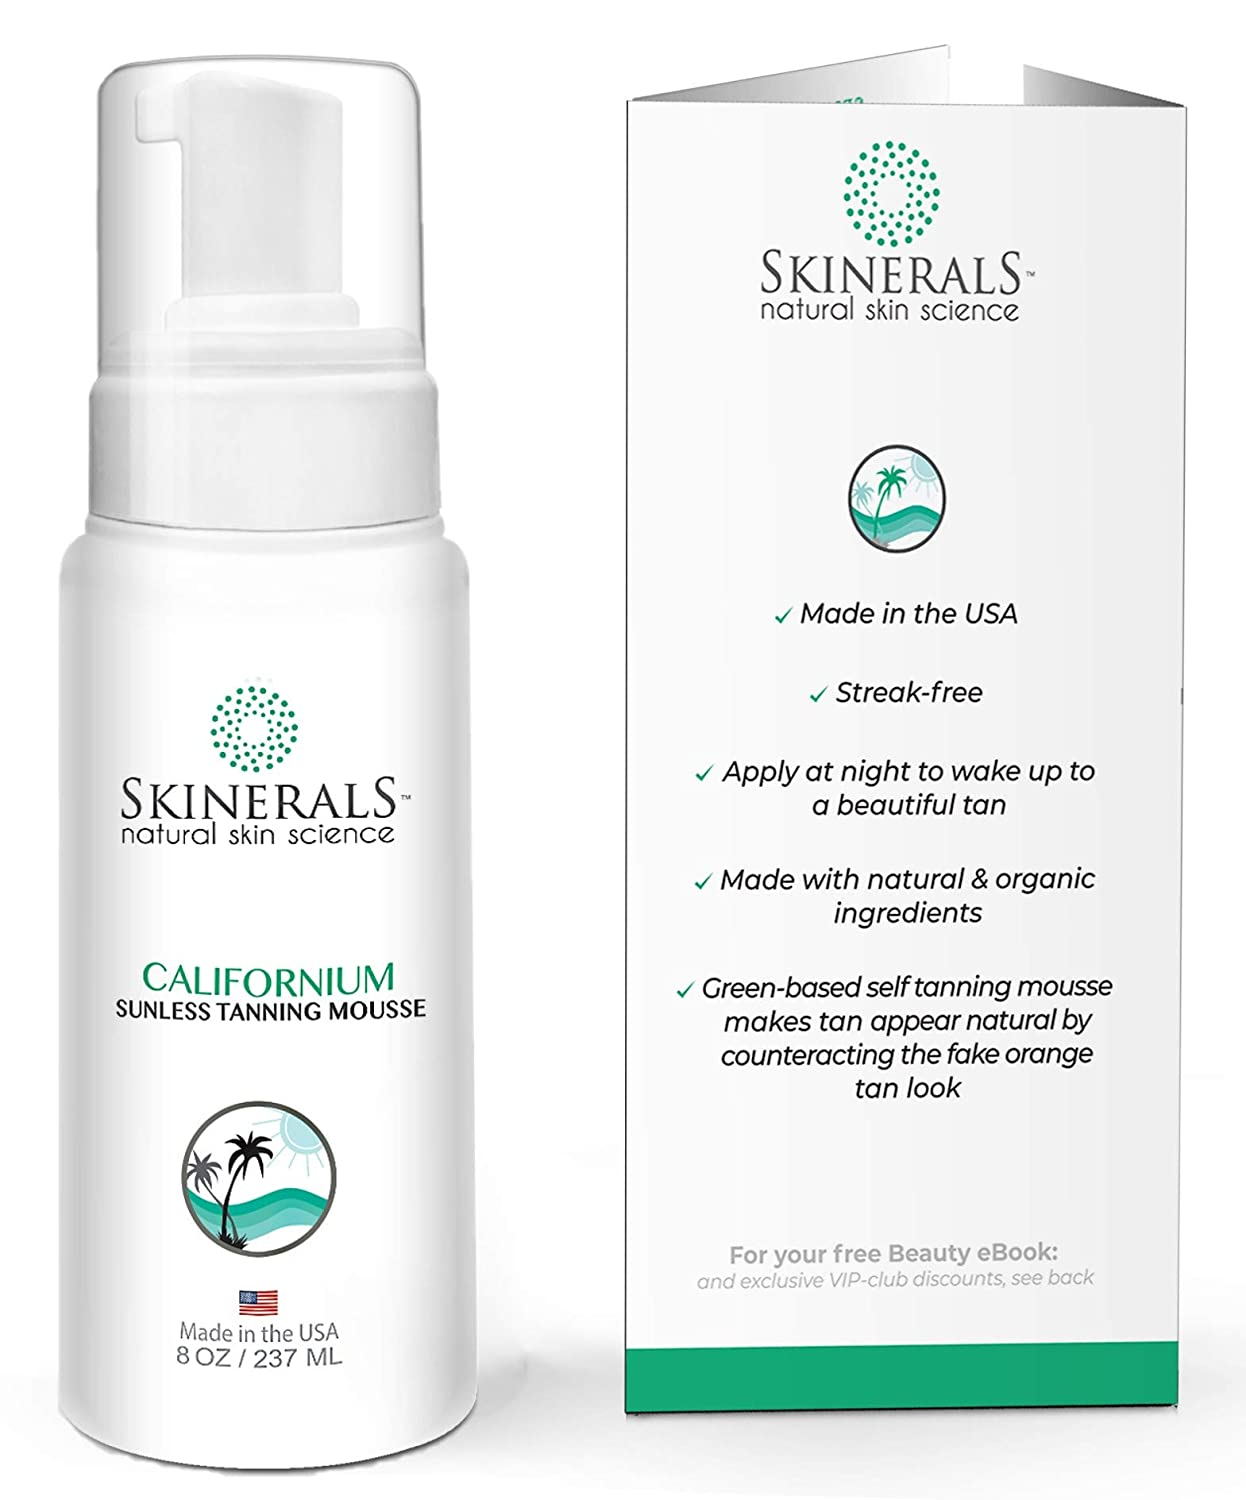 Skinerals Self-tanner Mousse